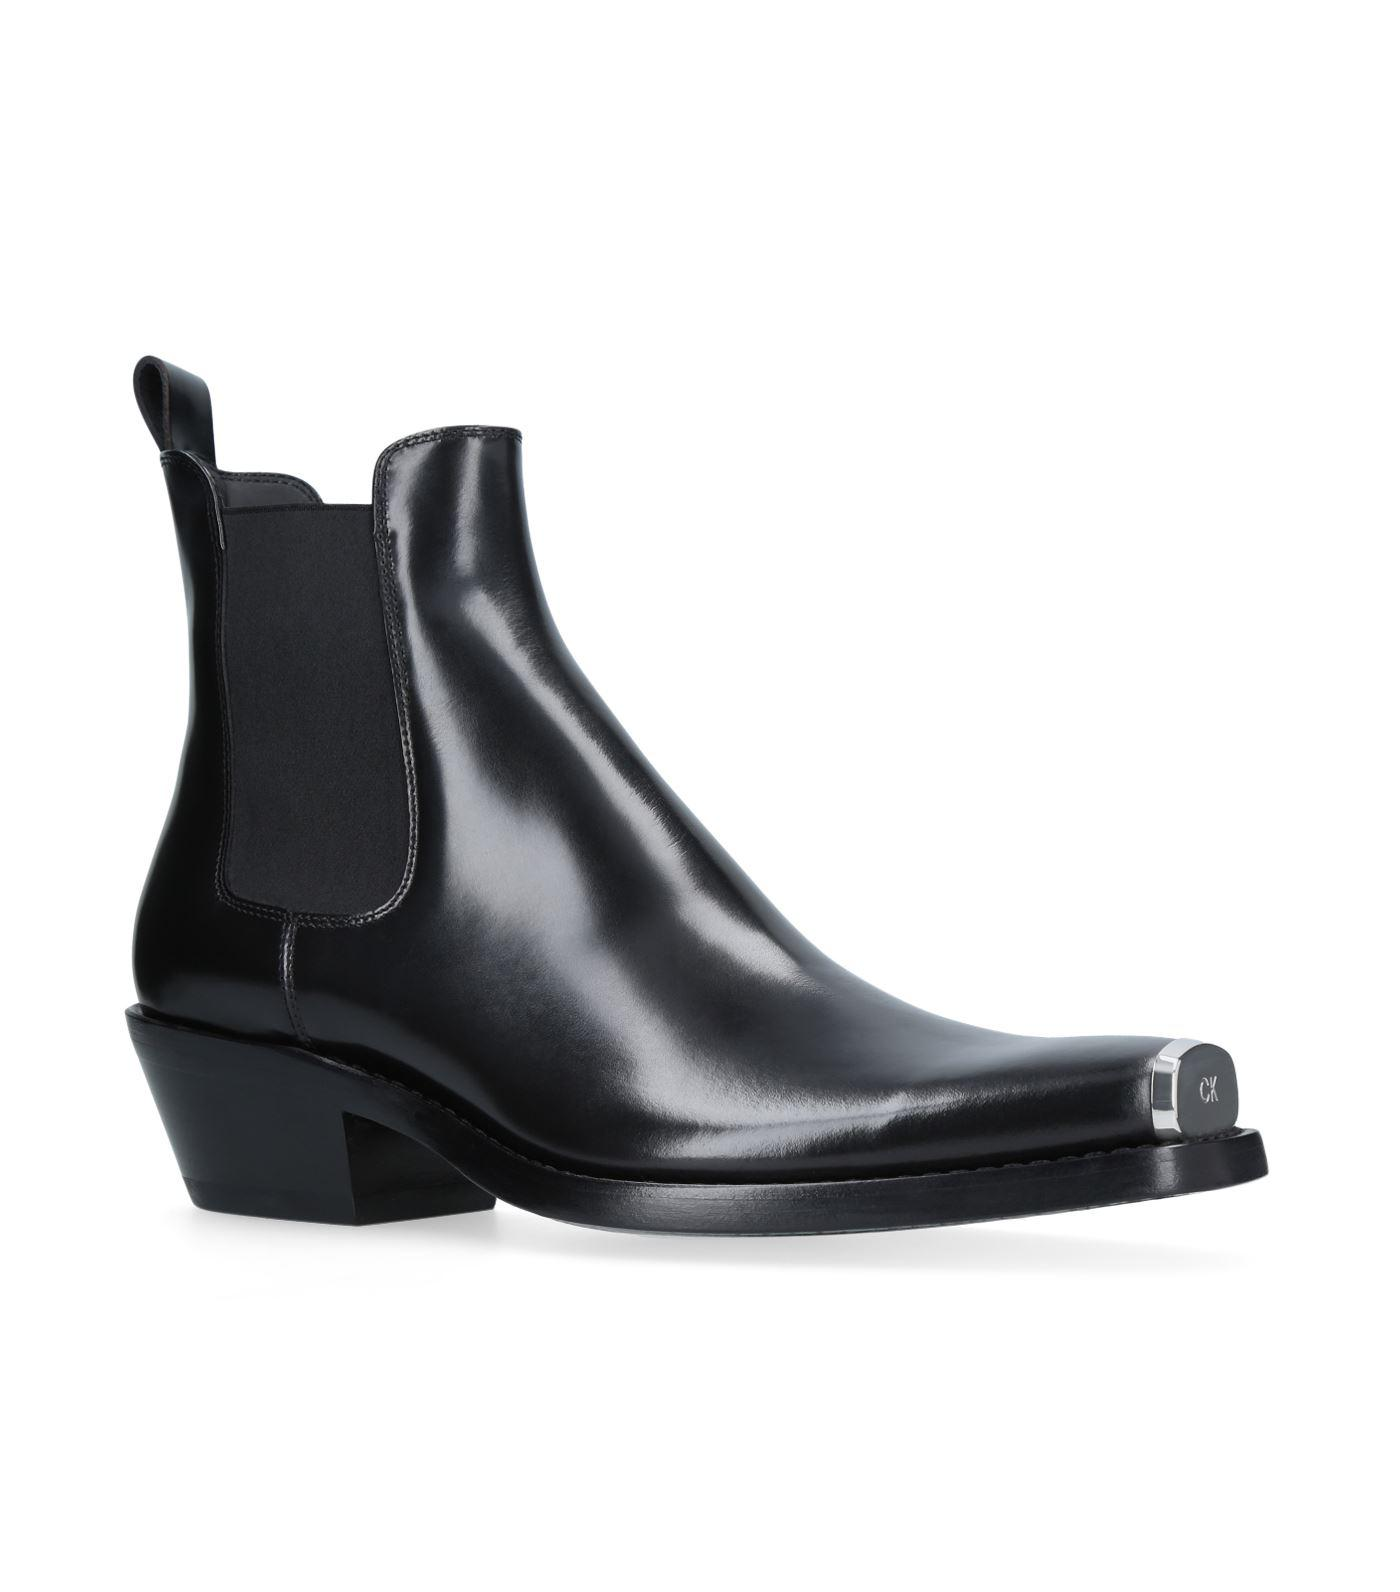 2f4591dcac8 Calvin Klein Show Western Chris Boots, Black, It 42.5 in Black - Lyst